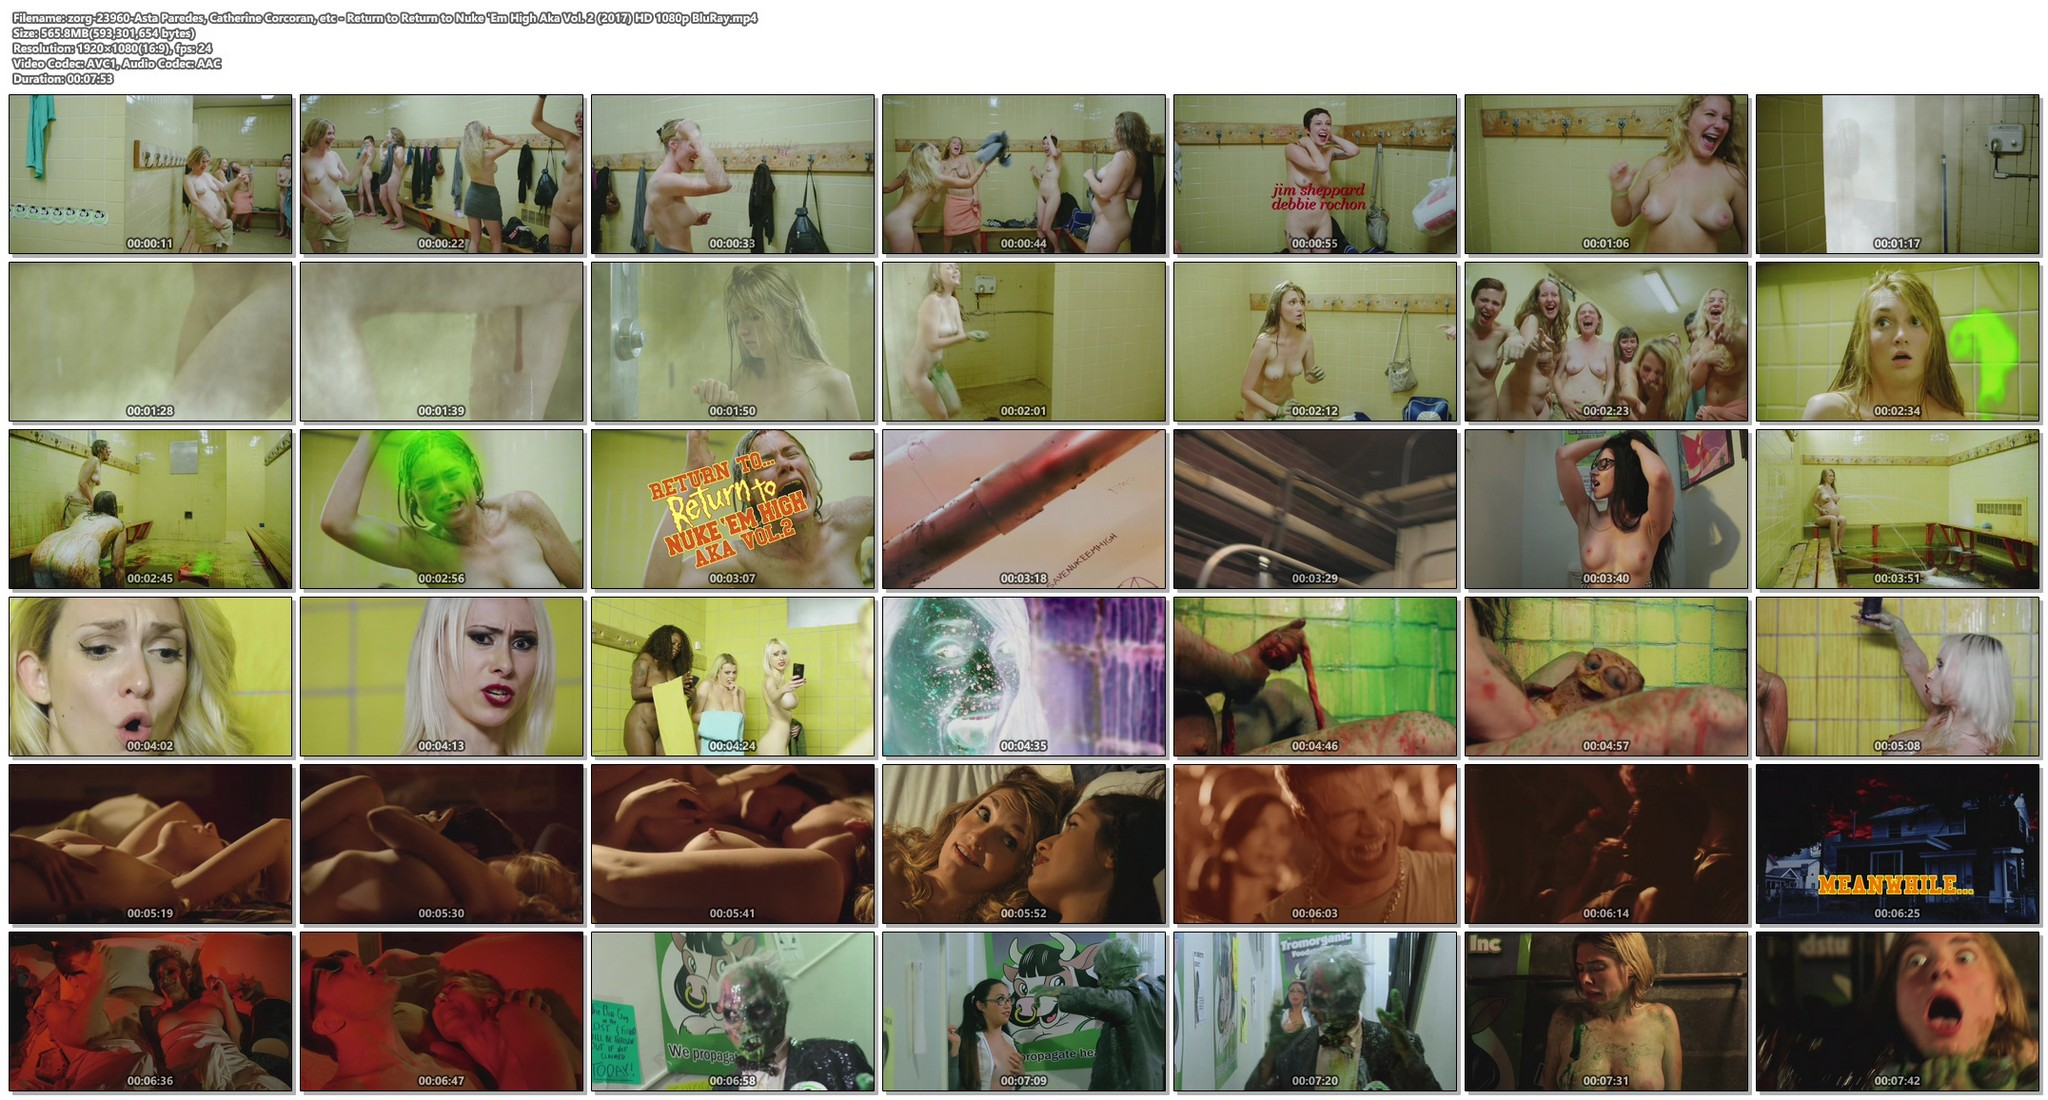 Asta Paredes nude sex Catherine Corcoran and others nude full frontal - Return to Return to Nuke 'Em High Aka Vol. 2 (2017) HD 1080p BluRay (1)